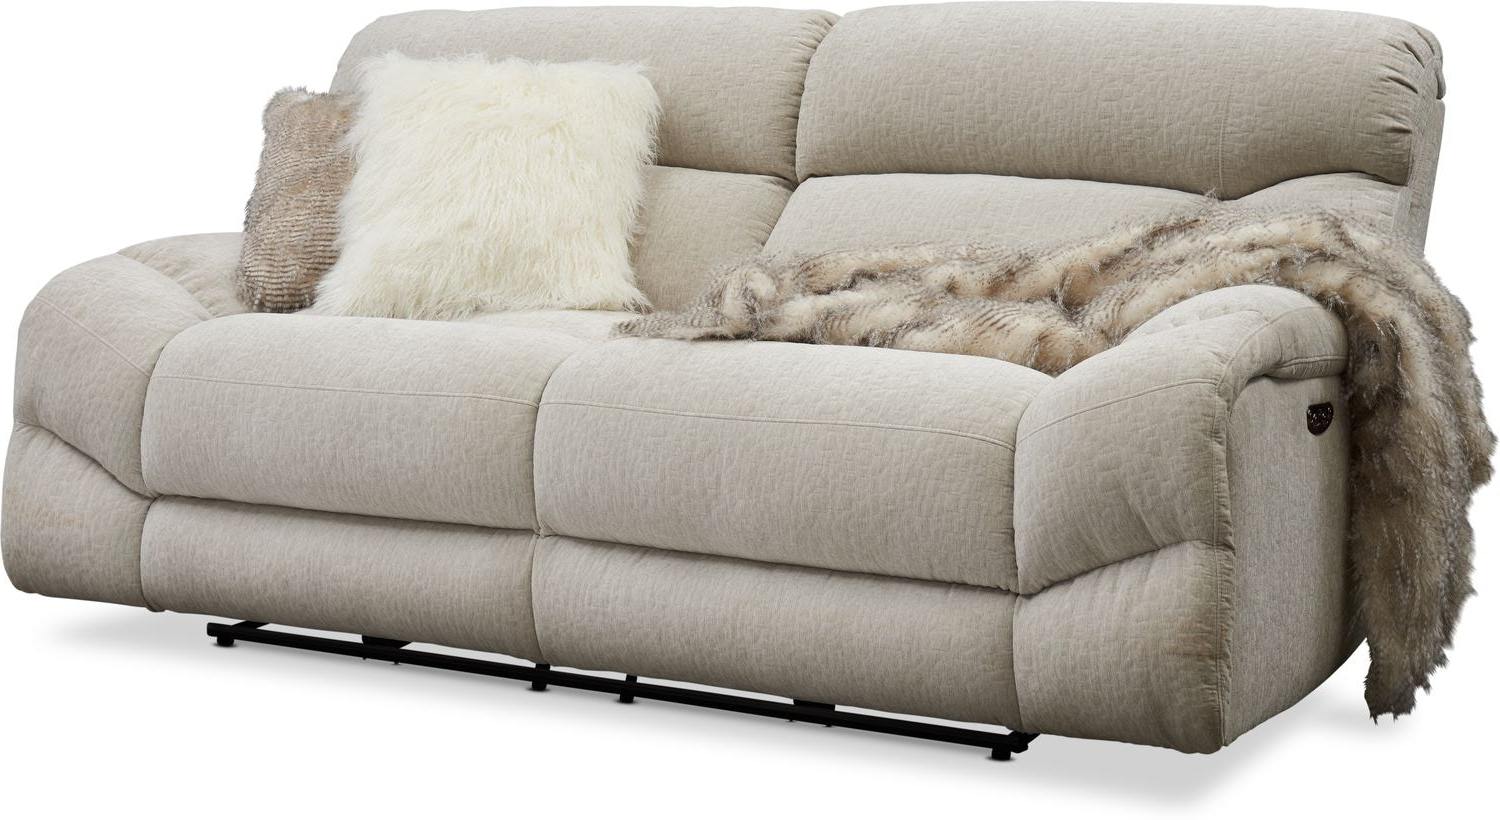 Current Sofa Power Recliner – Latest Sofa Pictures Throughout Marco Leather Power Reclining Sofas (View 11 of 15)